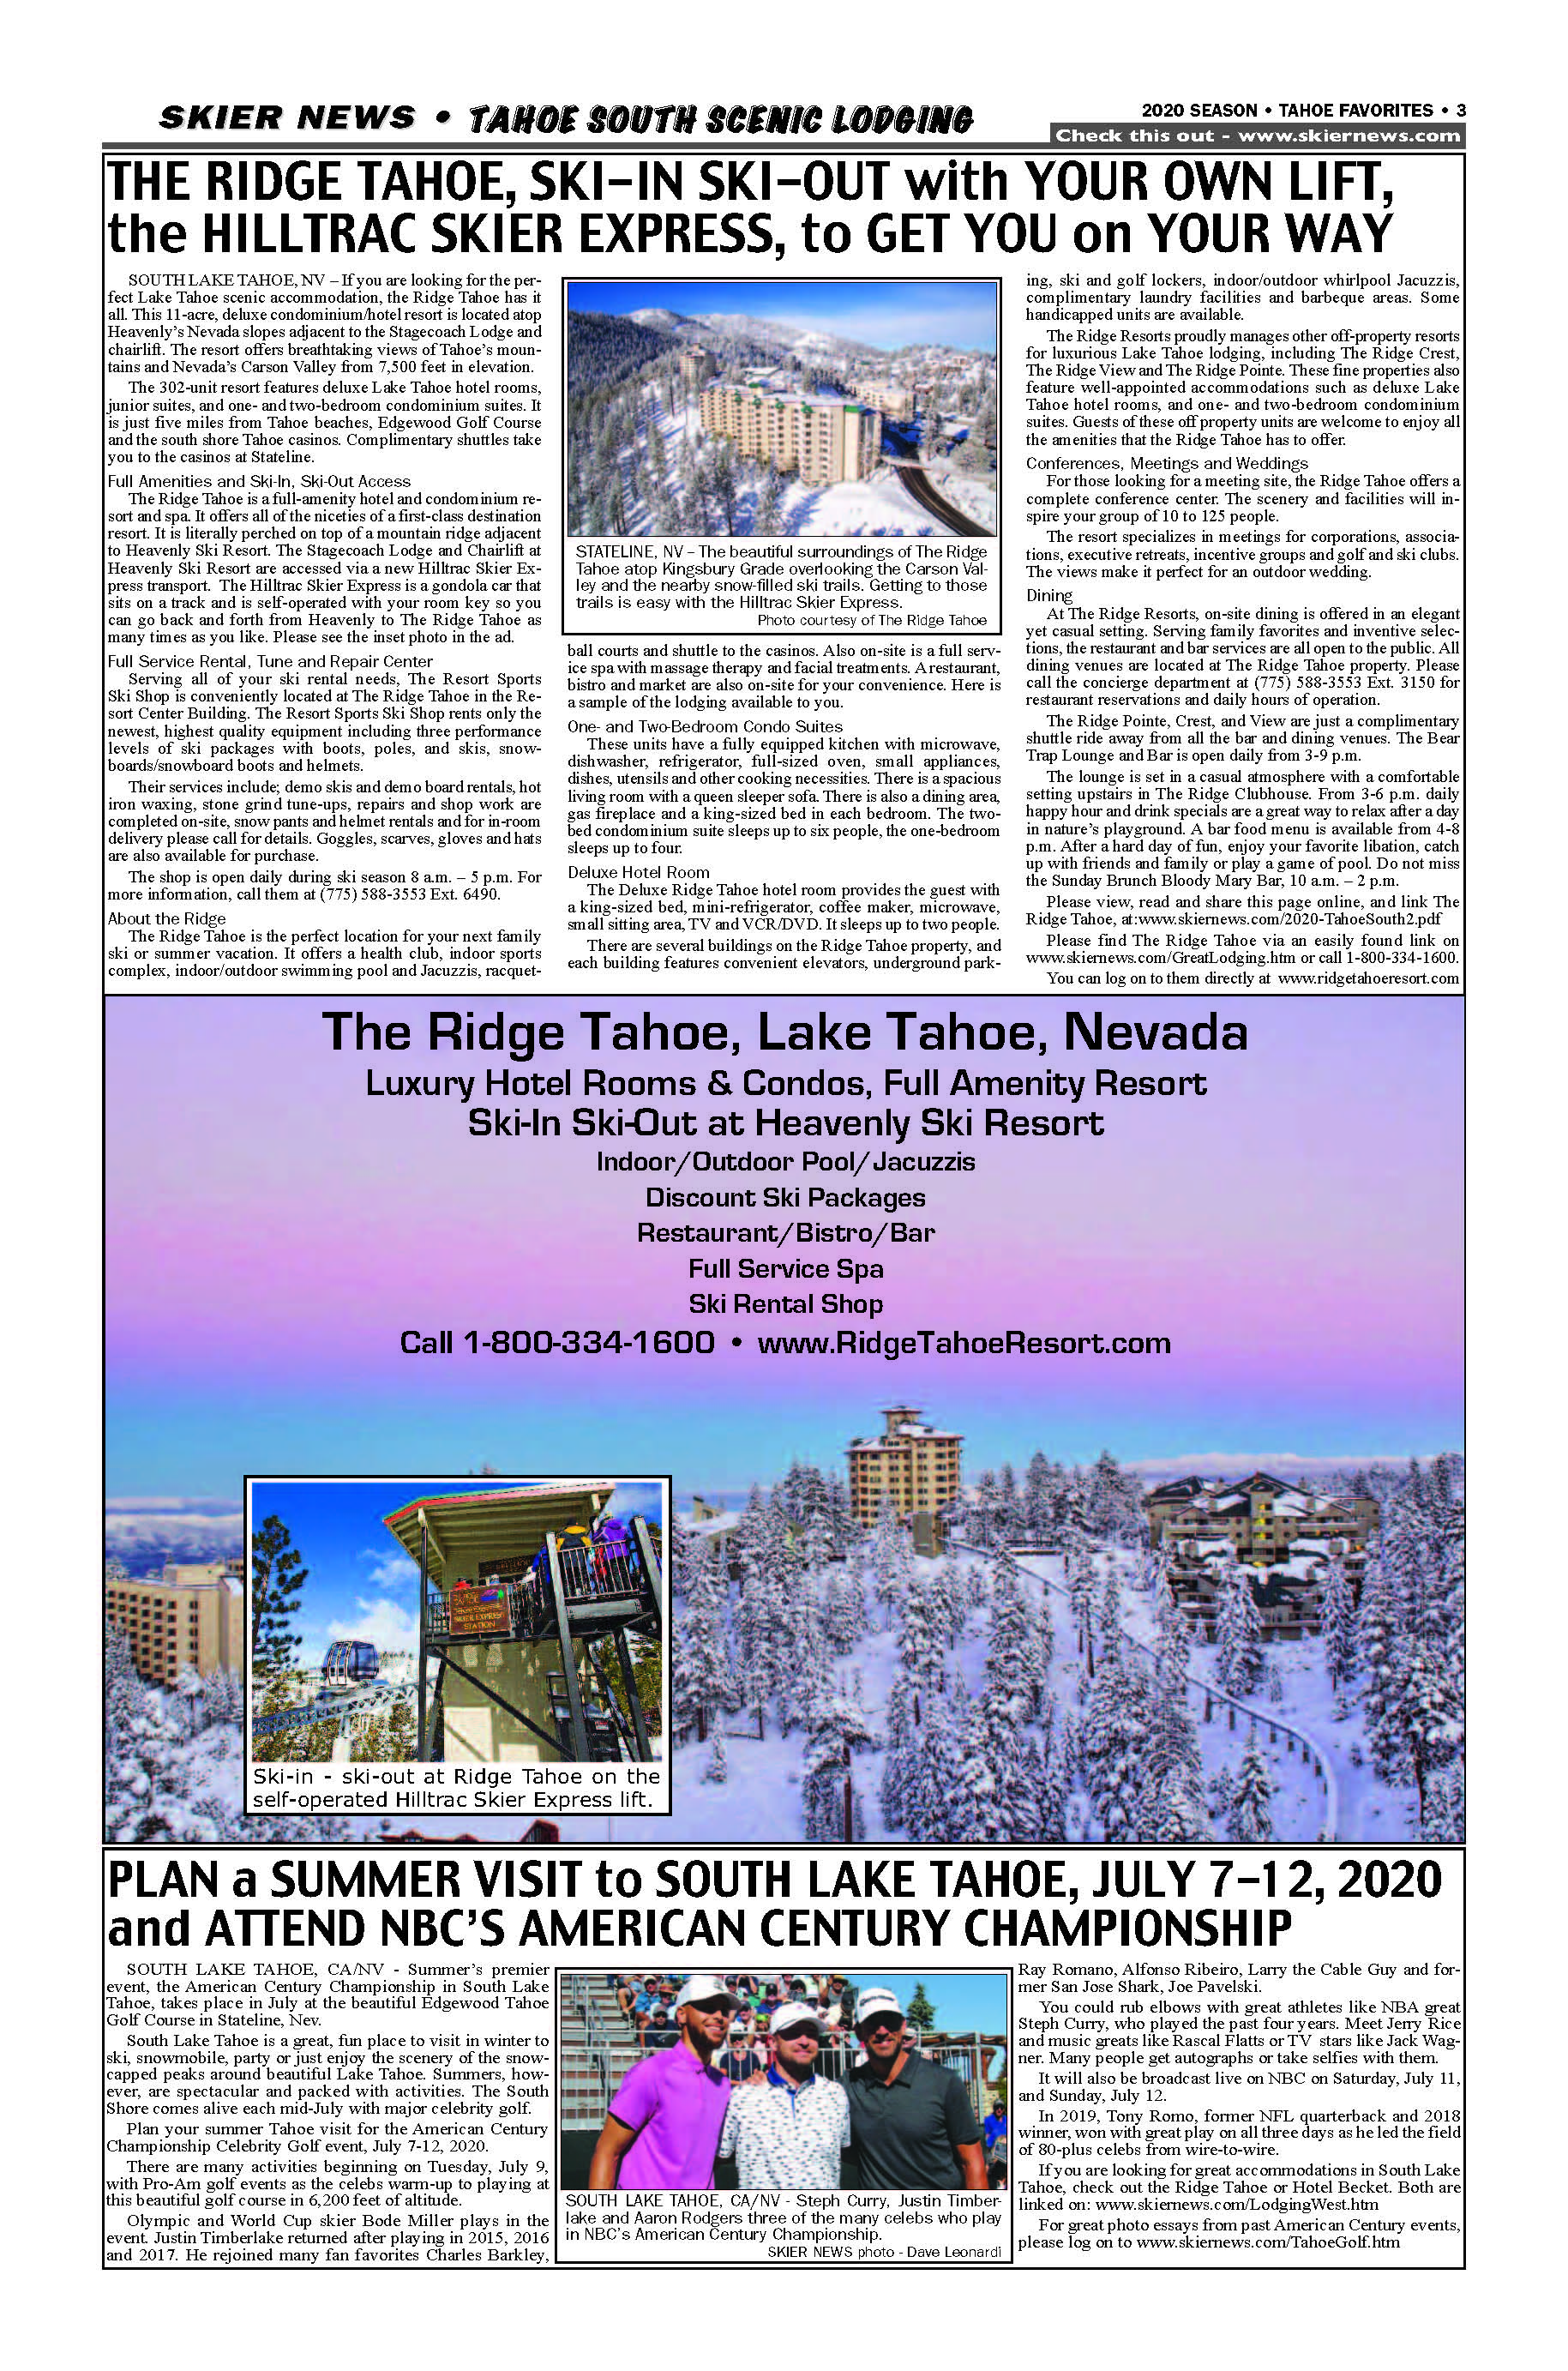 Edgewood Tahoe & Forest Suites